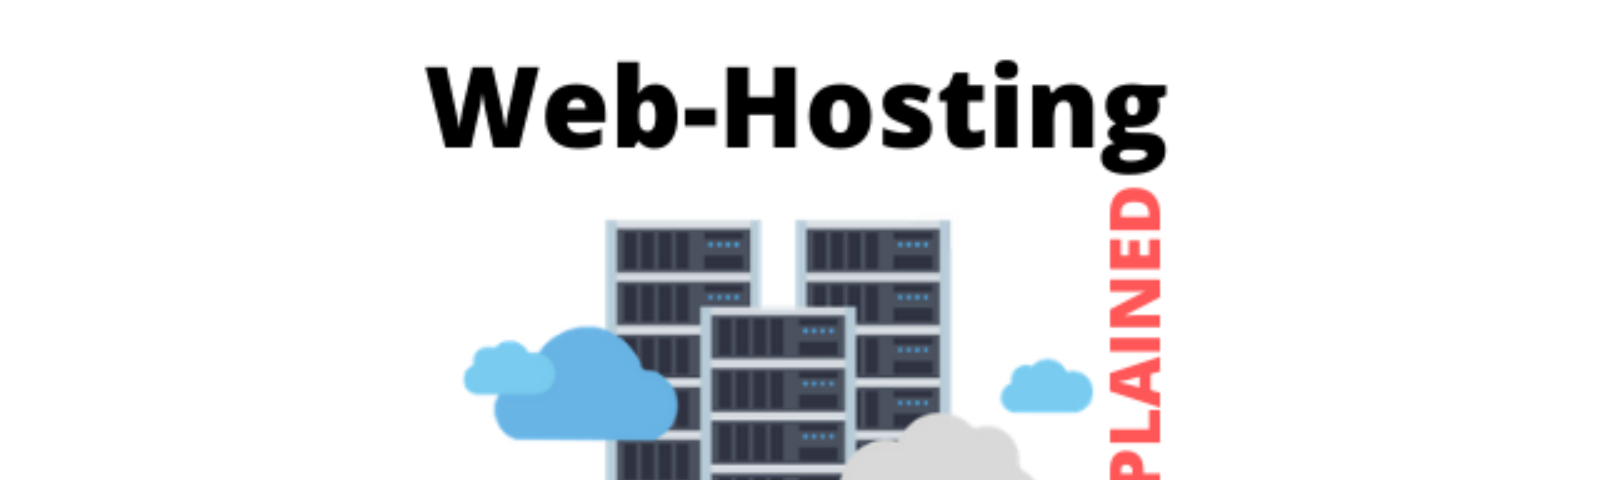 Web Hosting Explained Everything 11 Tips To Choose The Best Web Host In 2020 By Techsayem Medium